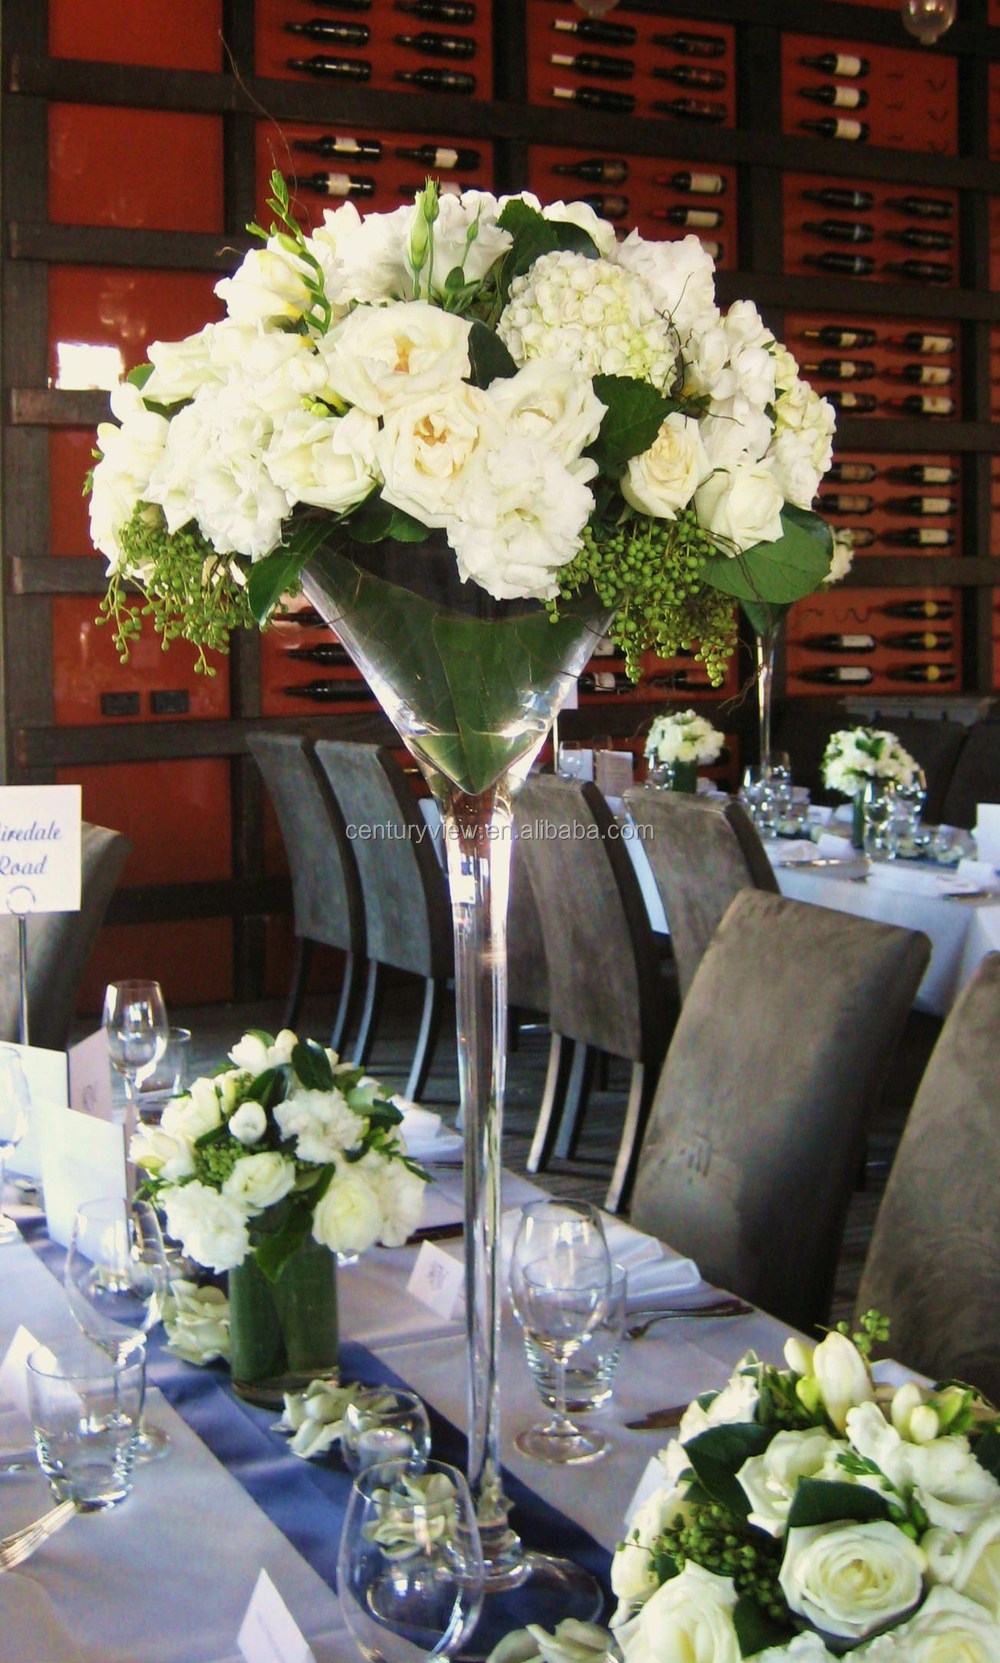 Long stemmed wholesale martini glass vases wedding